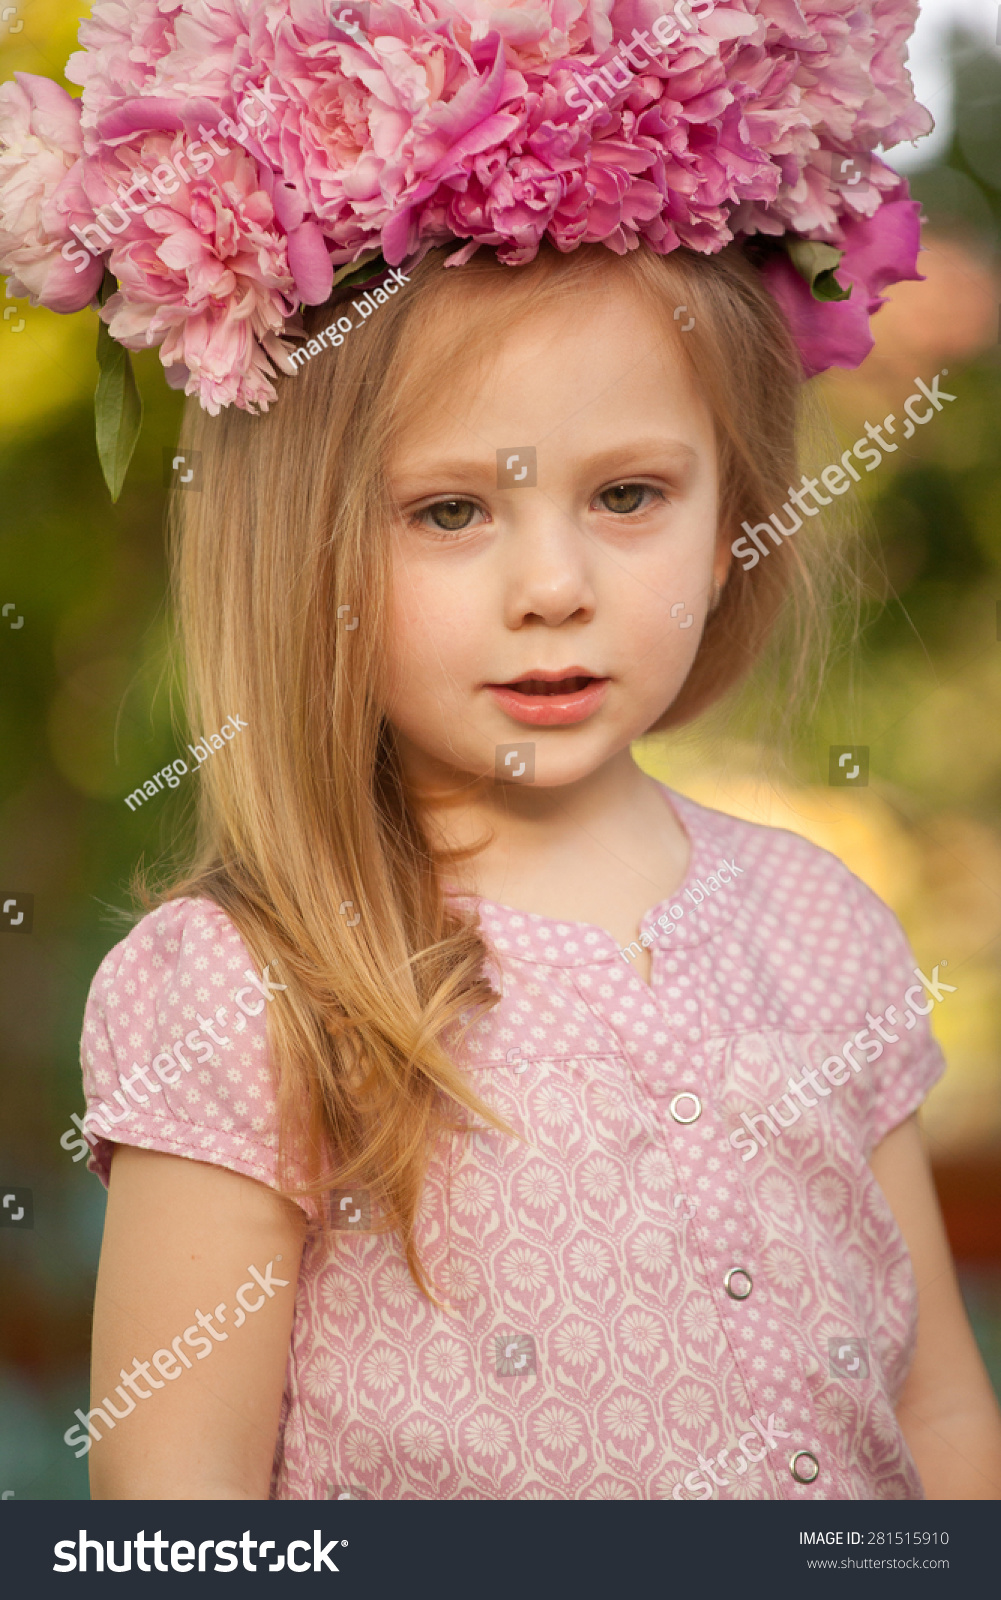 beautiful baby girl pink flowers outdoors stock photo & image